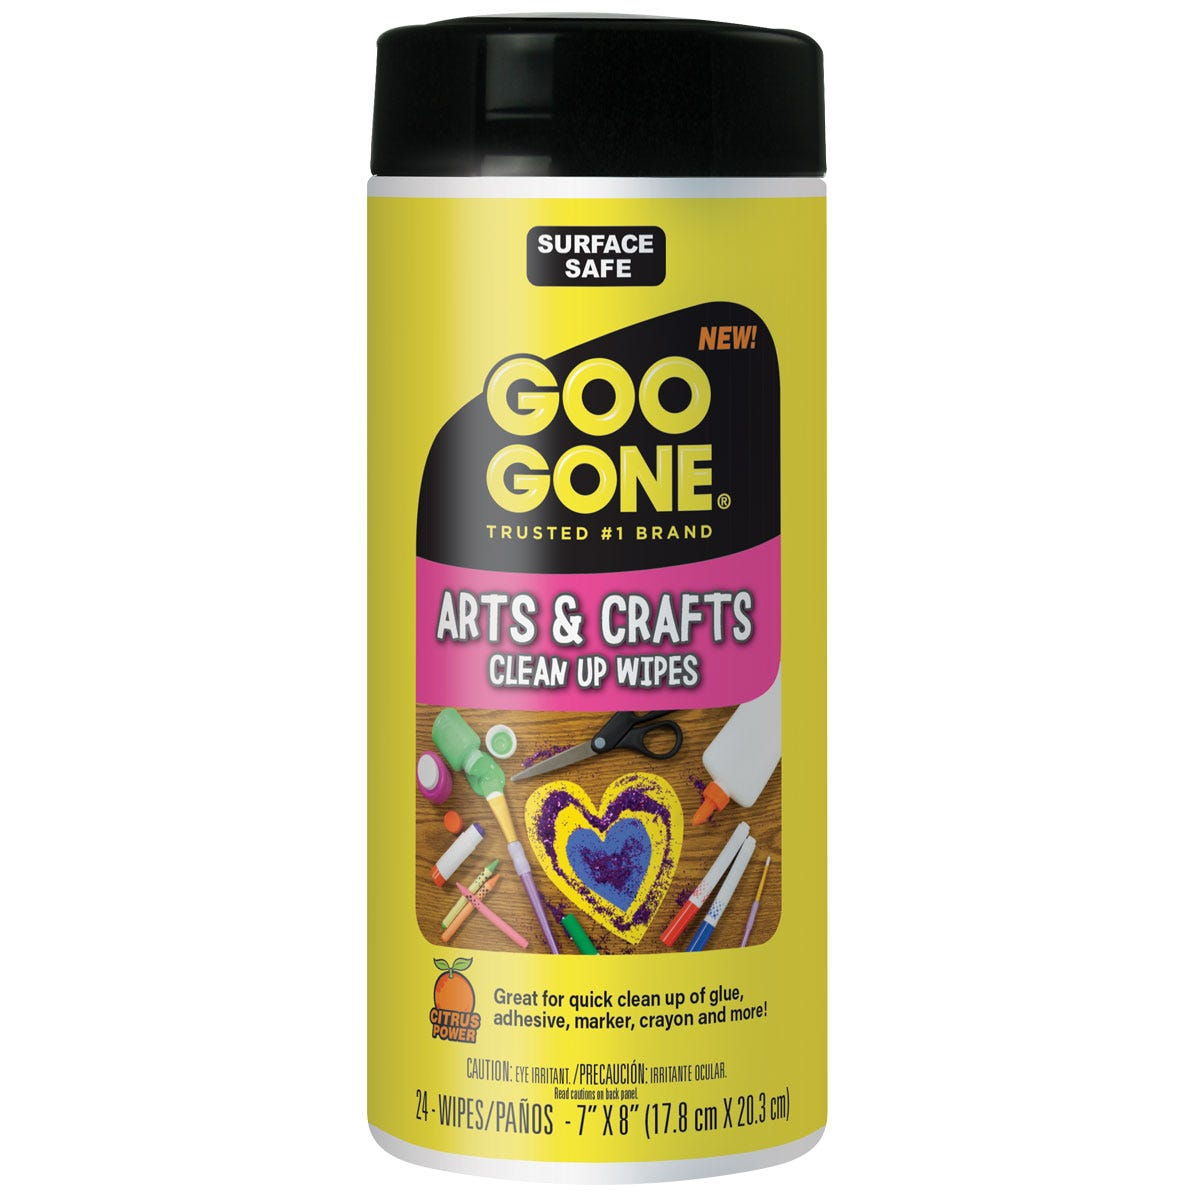 https://googone.com/media/catalog/product/a/r/arts-_-craft-adhesive-wipes_front.jpg